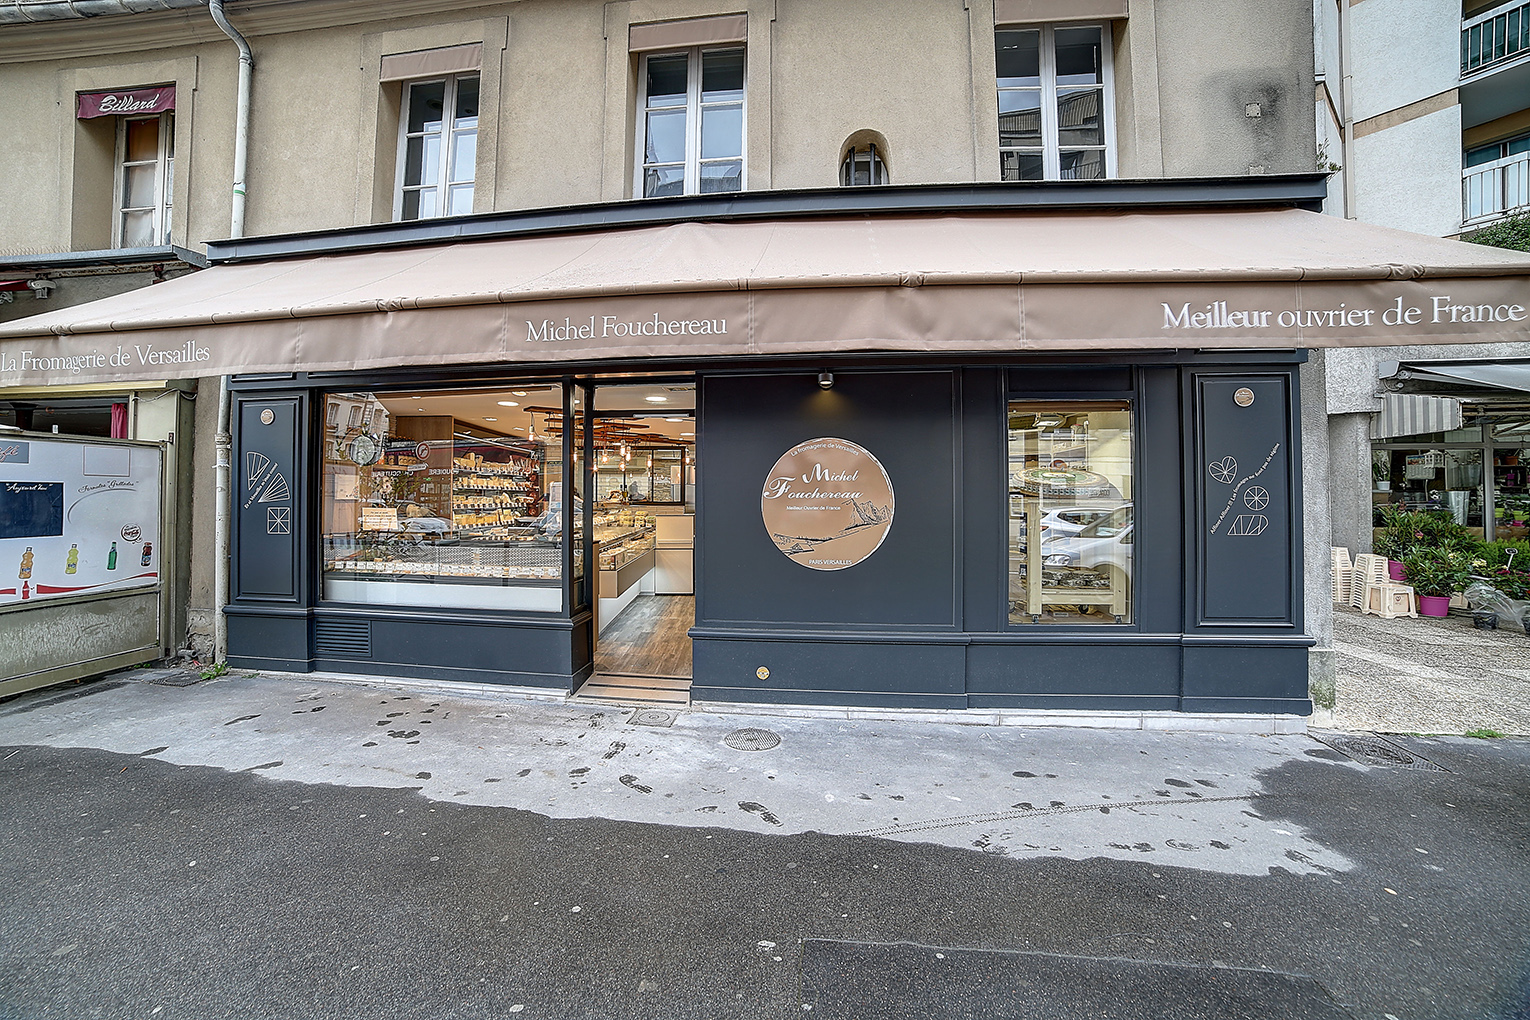 fromagerie_fouchereau-5